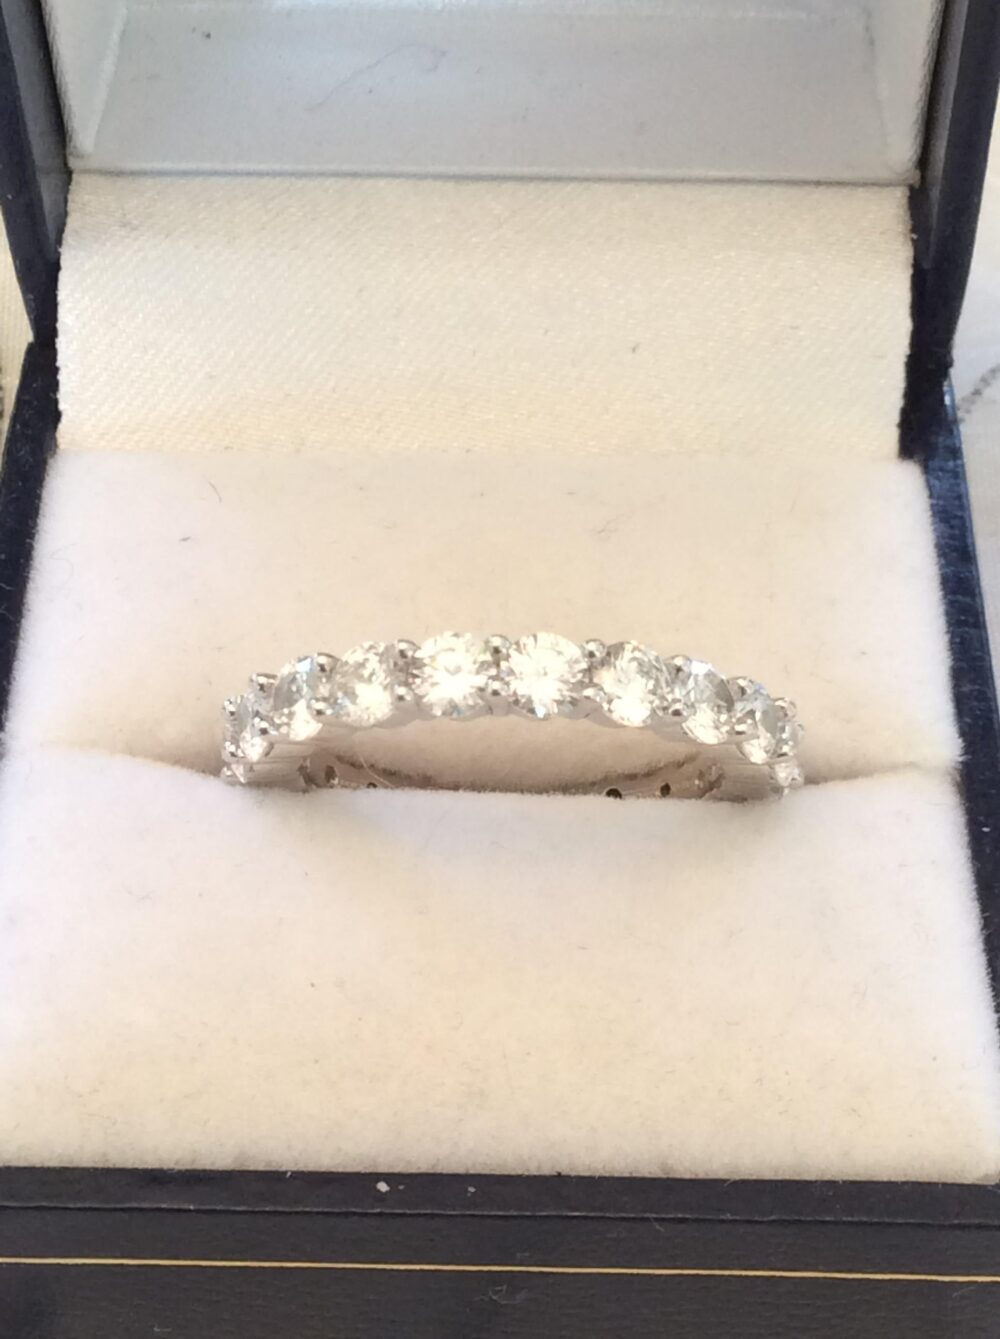 Authentic Vintage Full Gemstone Band Ring Sterling Silver, 925, Wedding, Bride, Promise, Birthday, Free Postage